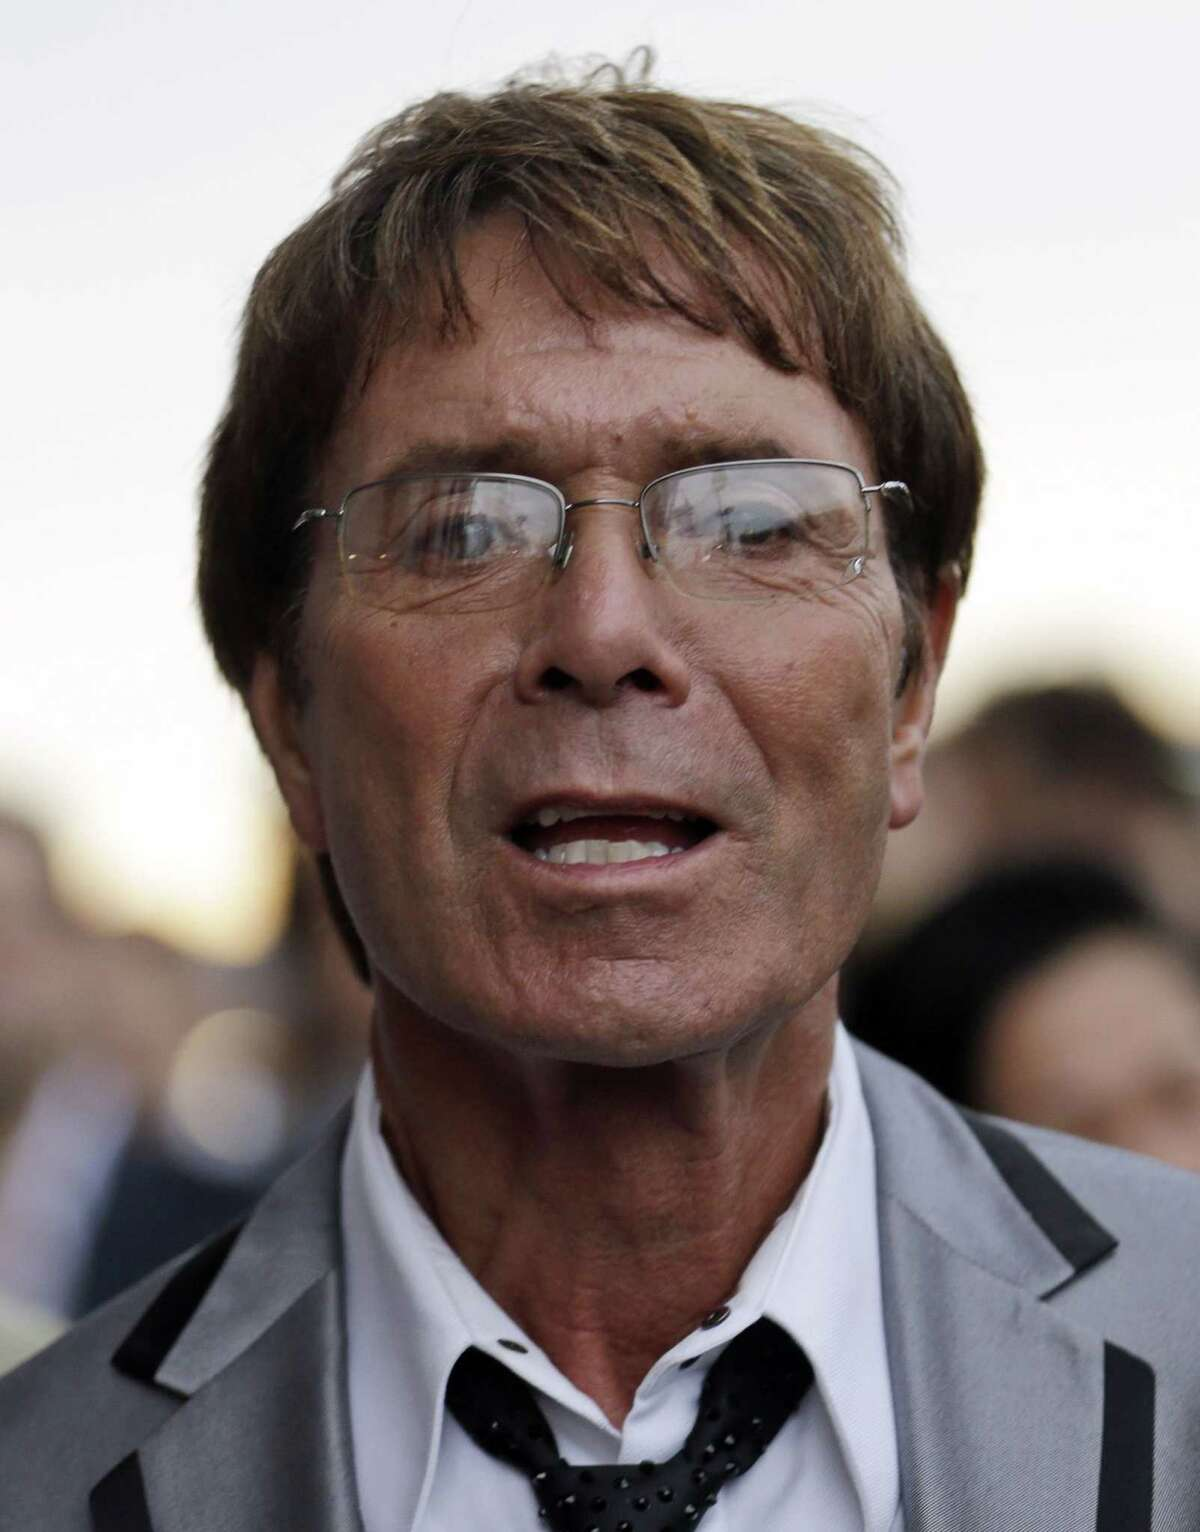 FILE - In this Friday July 27, 2012 file photo, British singer Cliff Richard arrives for the opening ceremony at the 2012 Summer Olympics, in London. A police investigation of veteran pop star Cliff Richard relating to claims of sexual assault has ìincreased significantly in size,î a British lawmaker said Wednesday Feb. 25, 2015. (AP Photo/Markus Schreiber, File)